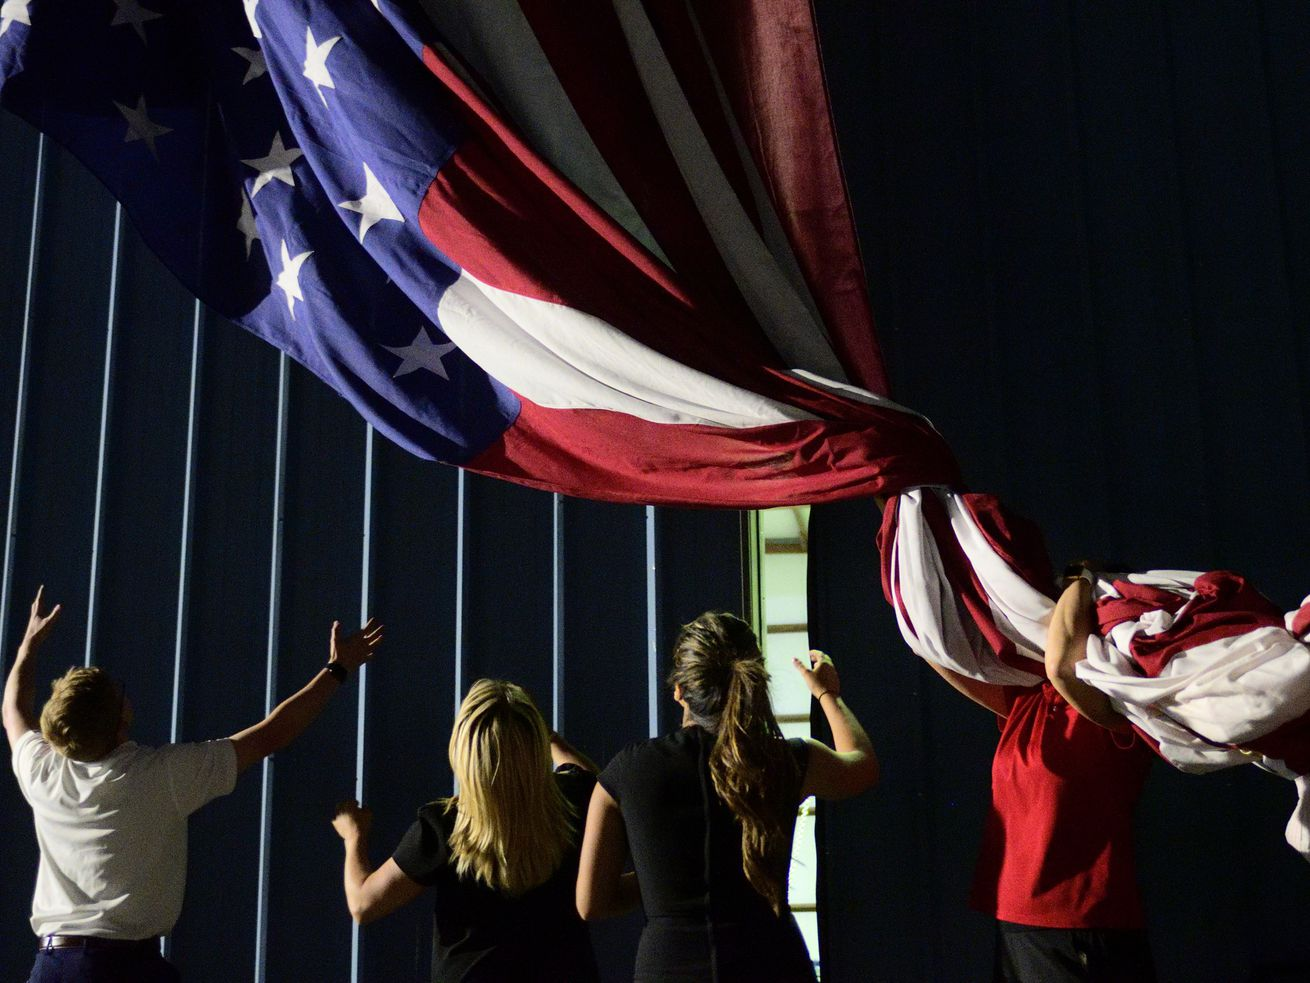 A large American flag, part of the decoration, is lowered by campaign aids after a MAGA rally with US President Donald J. Trump at the Williamsport Regional Airport, in Montoursville, PA, on May 20, 2019.